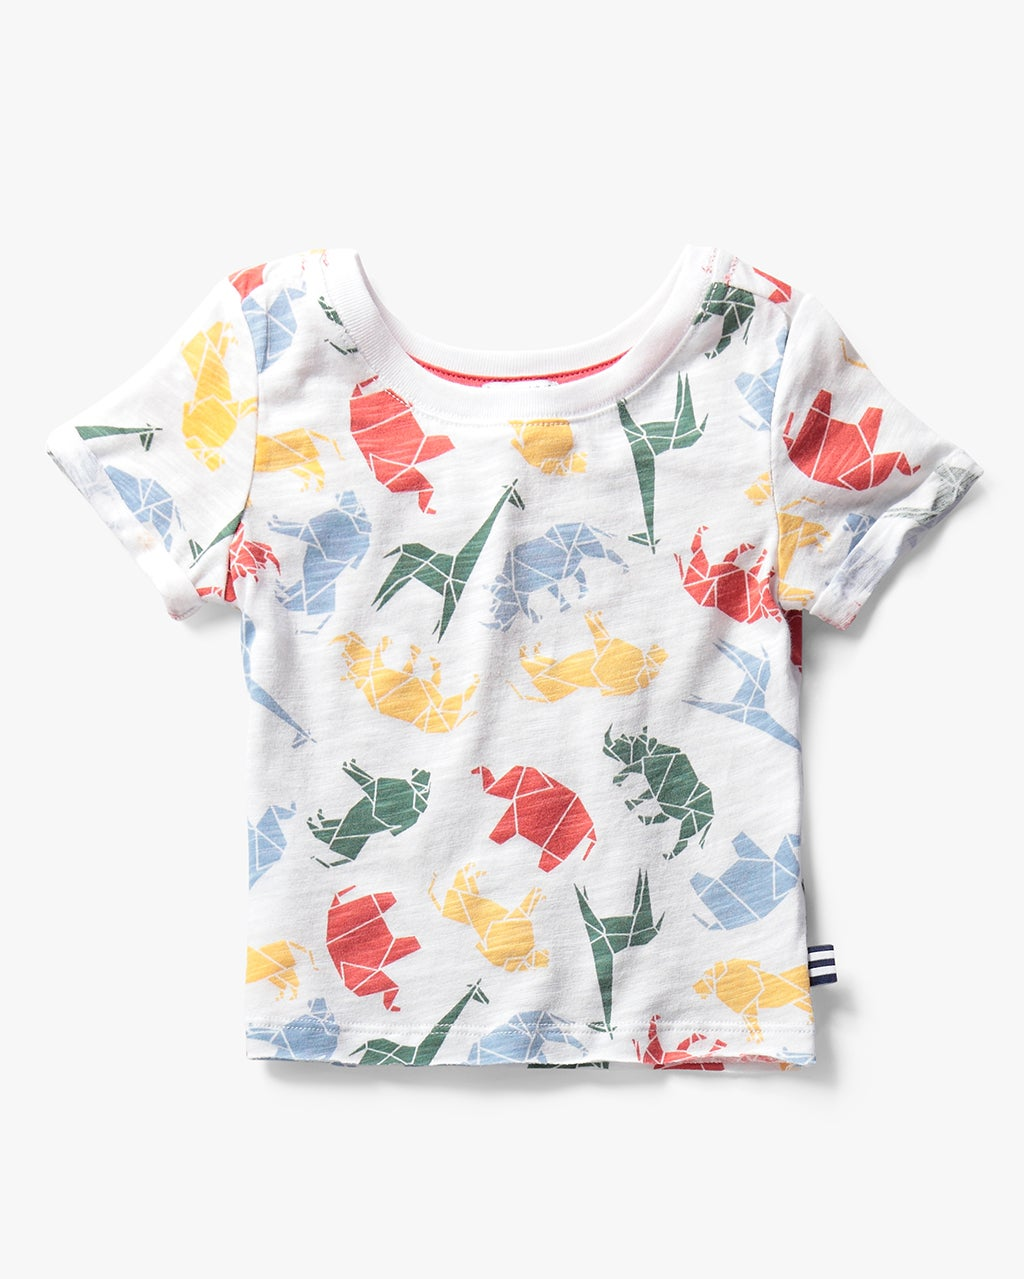 Splendid Girl Origami All Over Print Tee